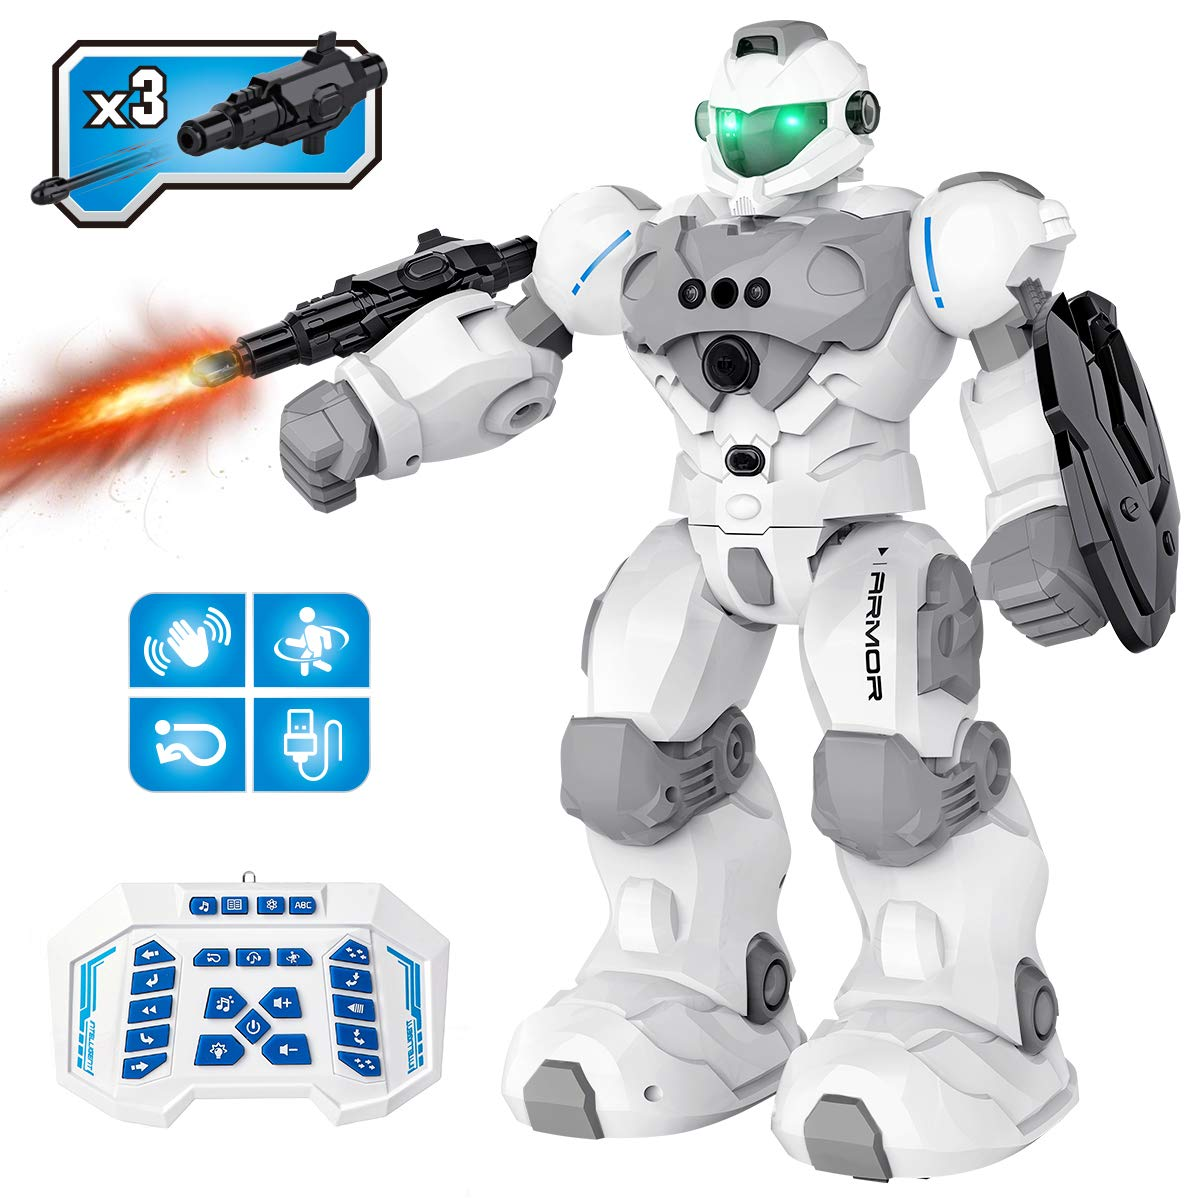 RC Robot Toy for 4 5 6 7 8 9-12 Year Old Kids, Remote Control Robot Intelligent Programmable Robot w/ Gesture Sensing, Dancing, Singing, Smart Robot Gifts for Kids Boys Girls(Gray)